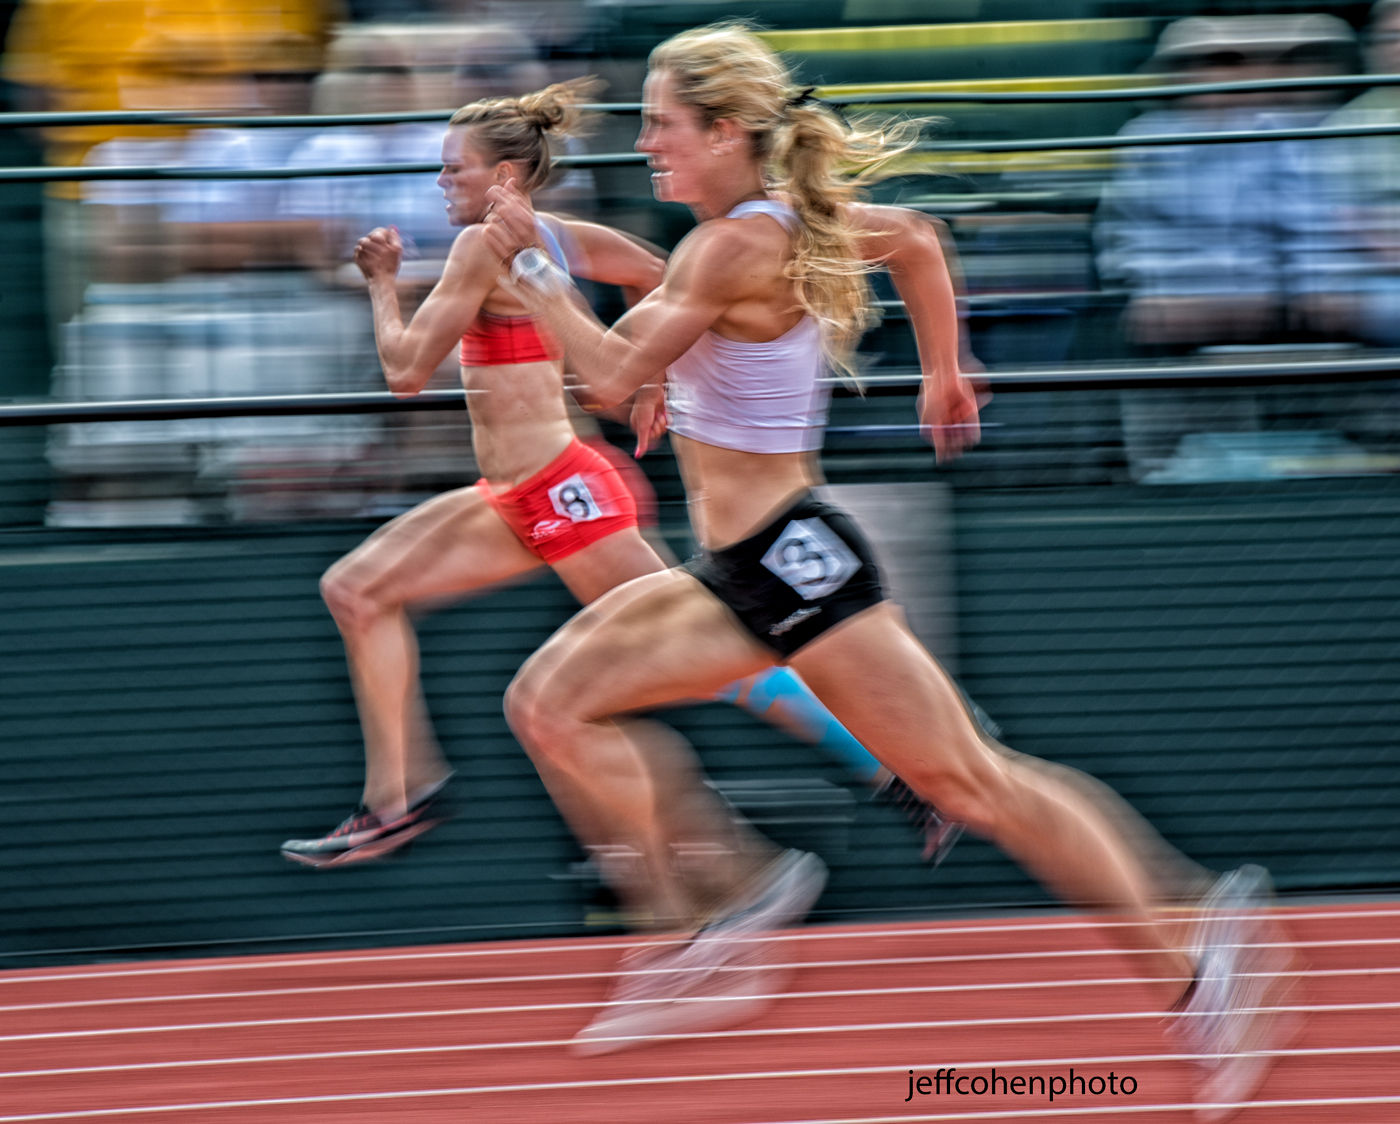 1r2016_oly_trials_day_8_alison_reasler_hept_200m_jeff_cohen_photo_25709_web.jpg